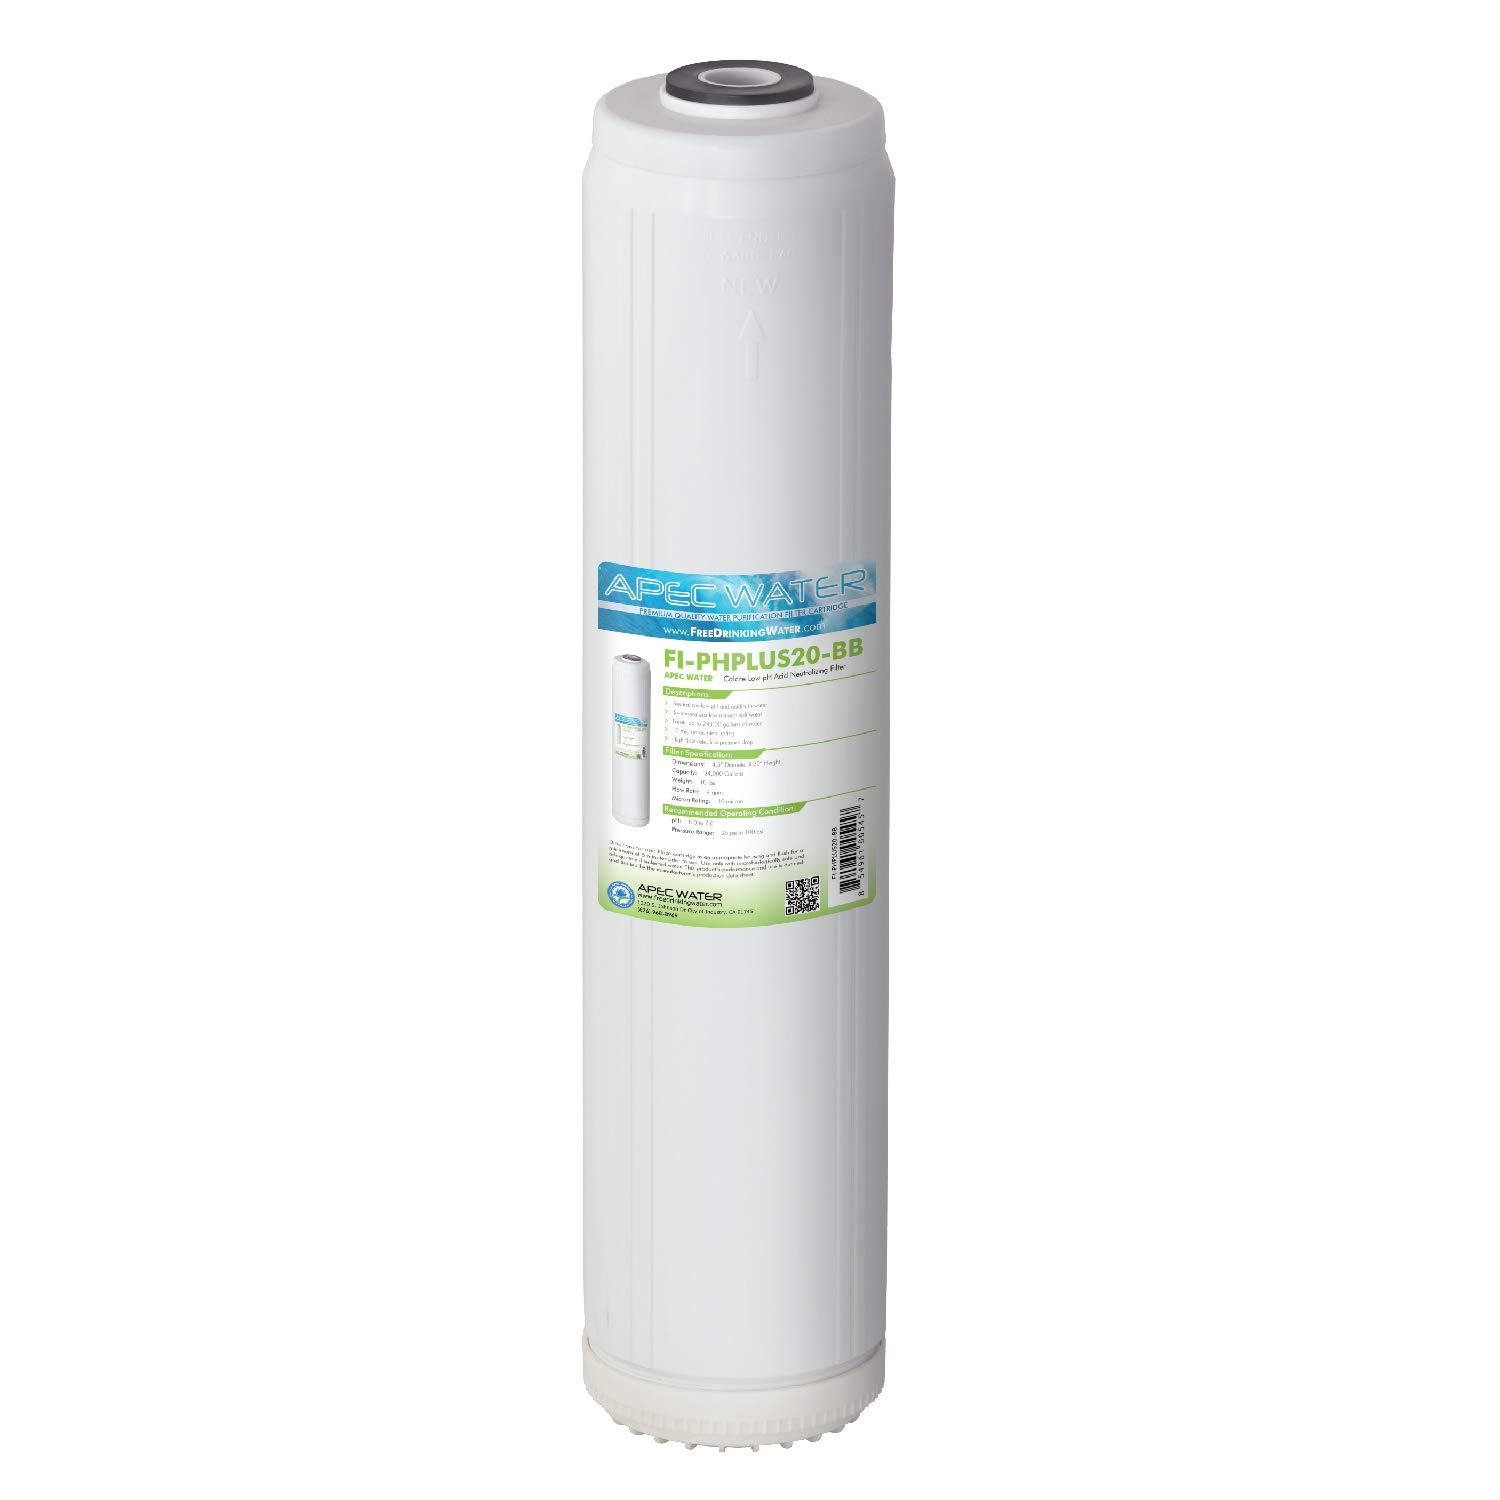 """APEC Water Systems FI-PHPLUS20-BB APEC Whole House pH+ Alkaline Calcium Mineral Cartridge-20 L x 4-1/2""""D, 10 Micron Big Blue Filter (24,000 Gallons Capacity)"""